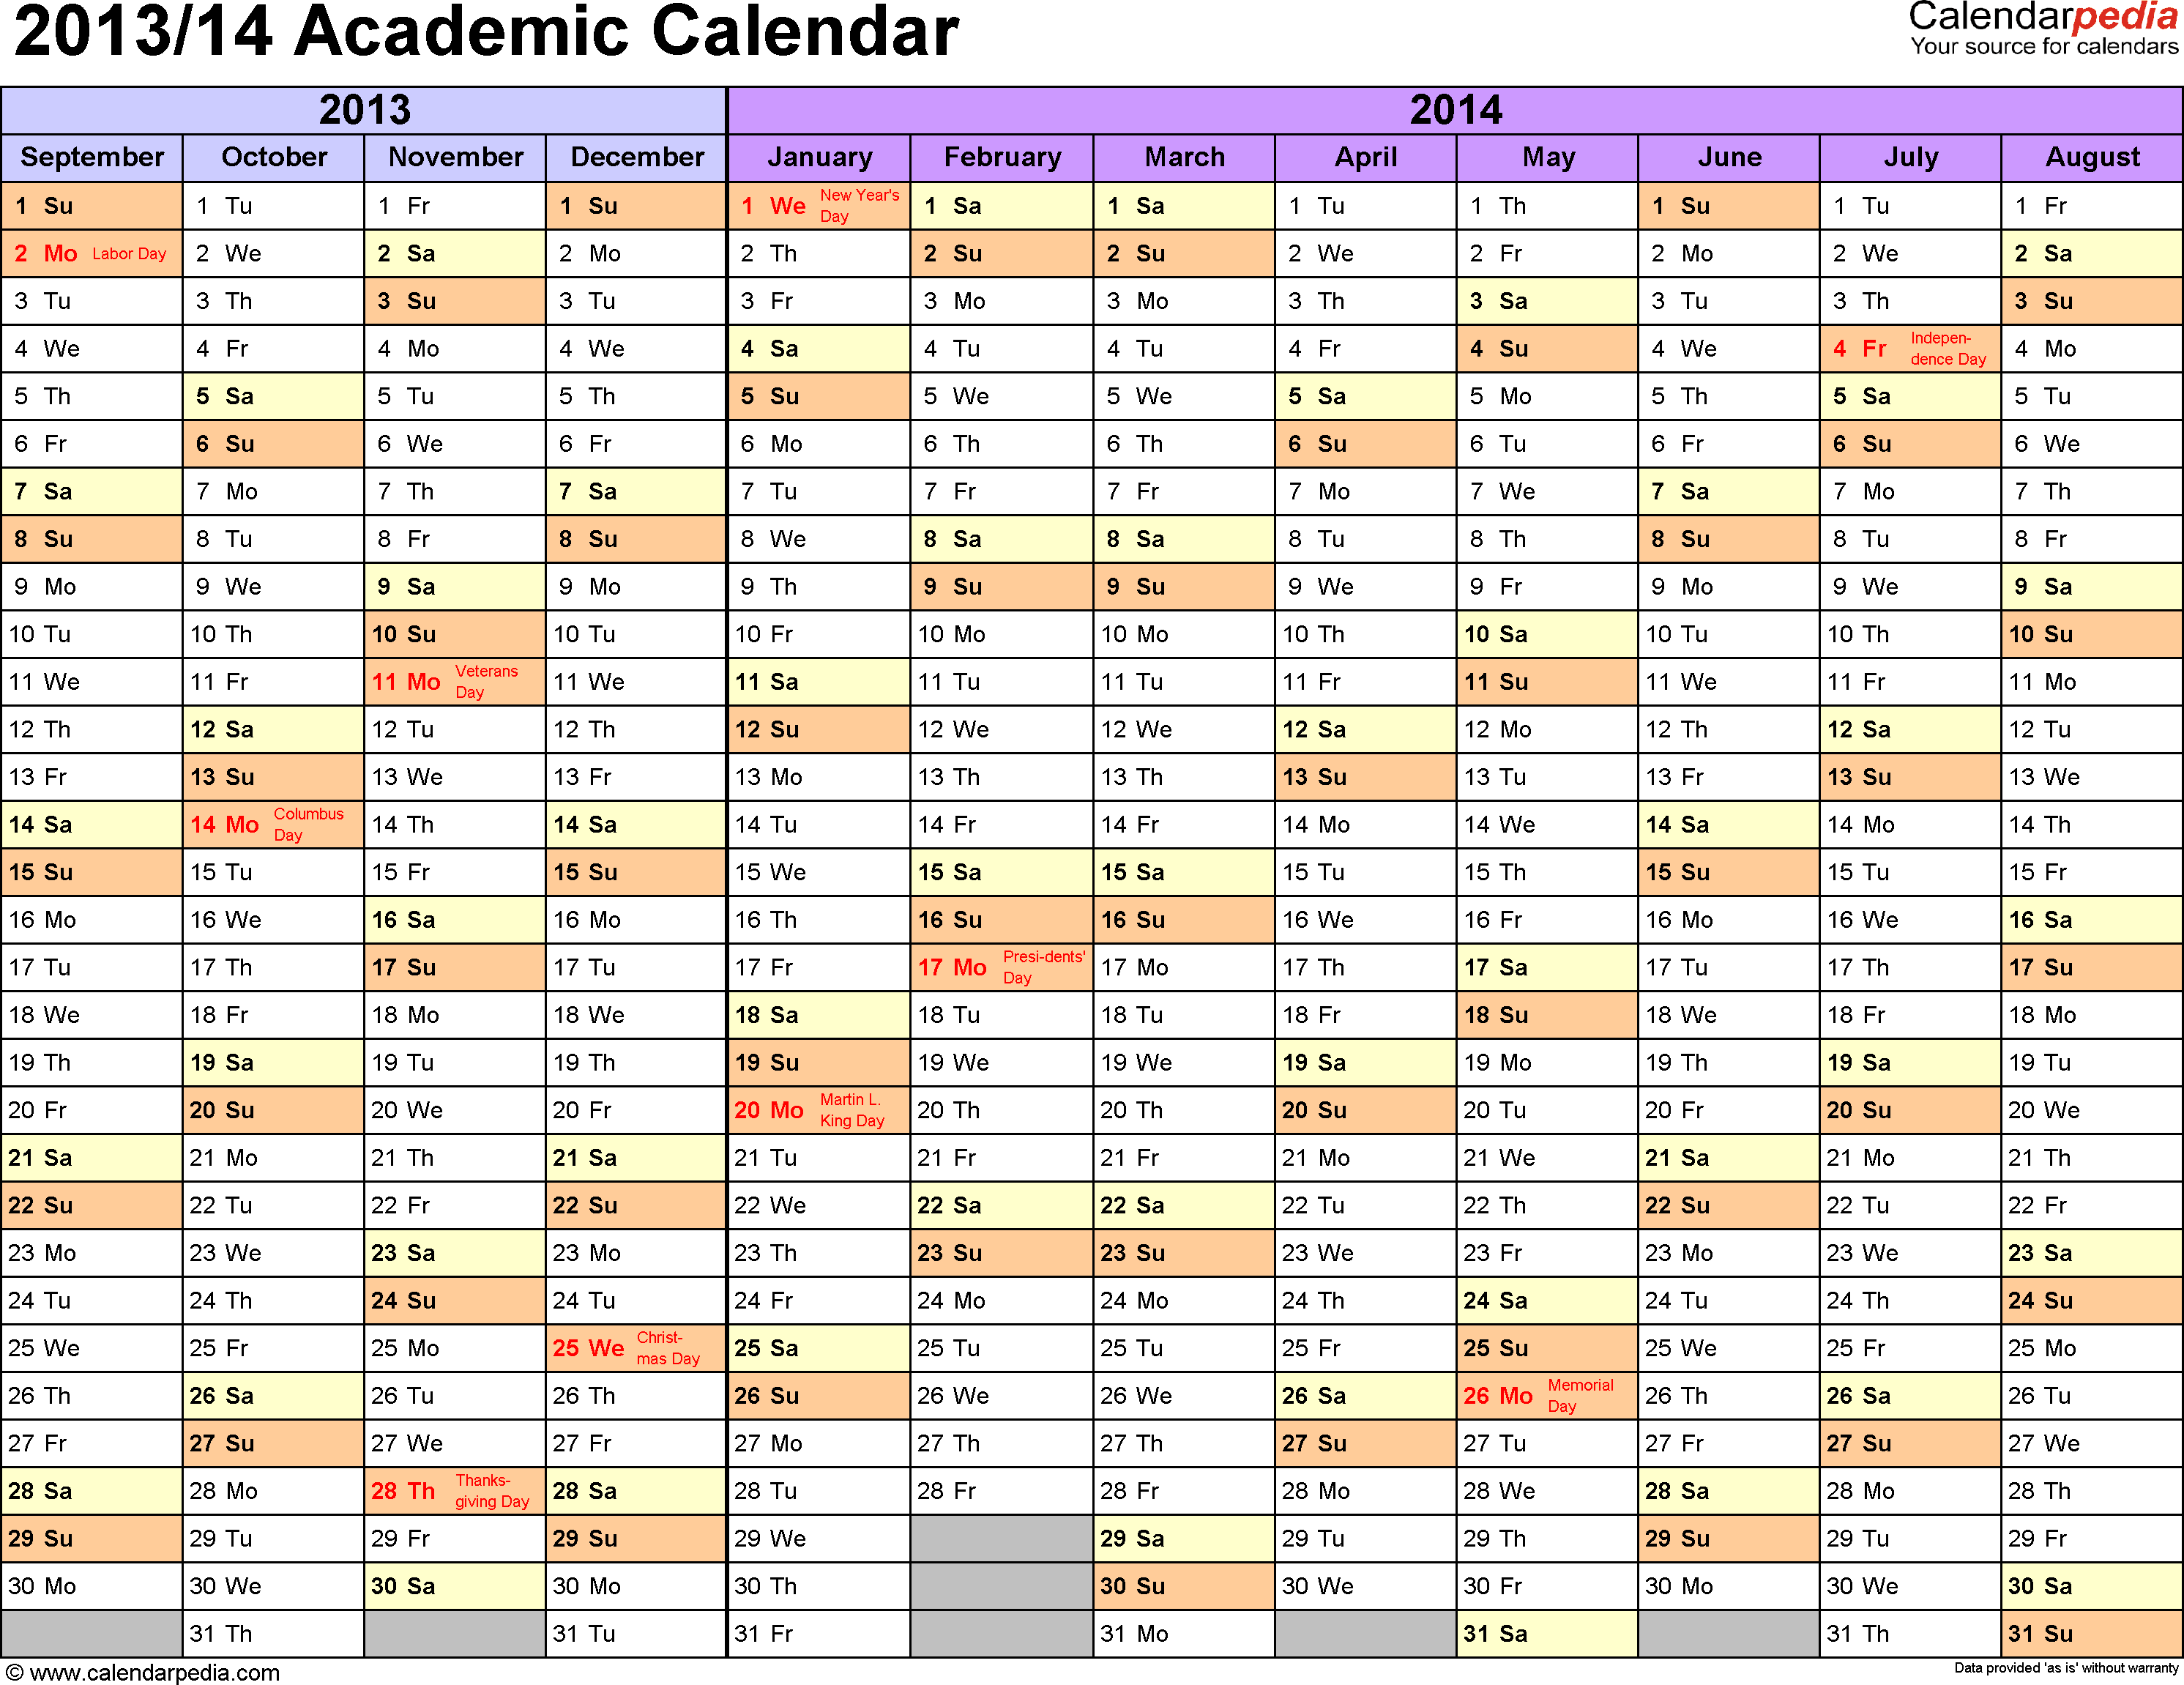 Template 1: Academic calendar 2013/14 for PDF, landscape orientation, months horizontally, 1 page